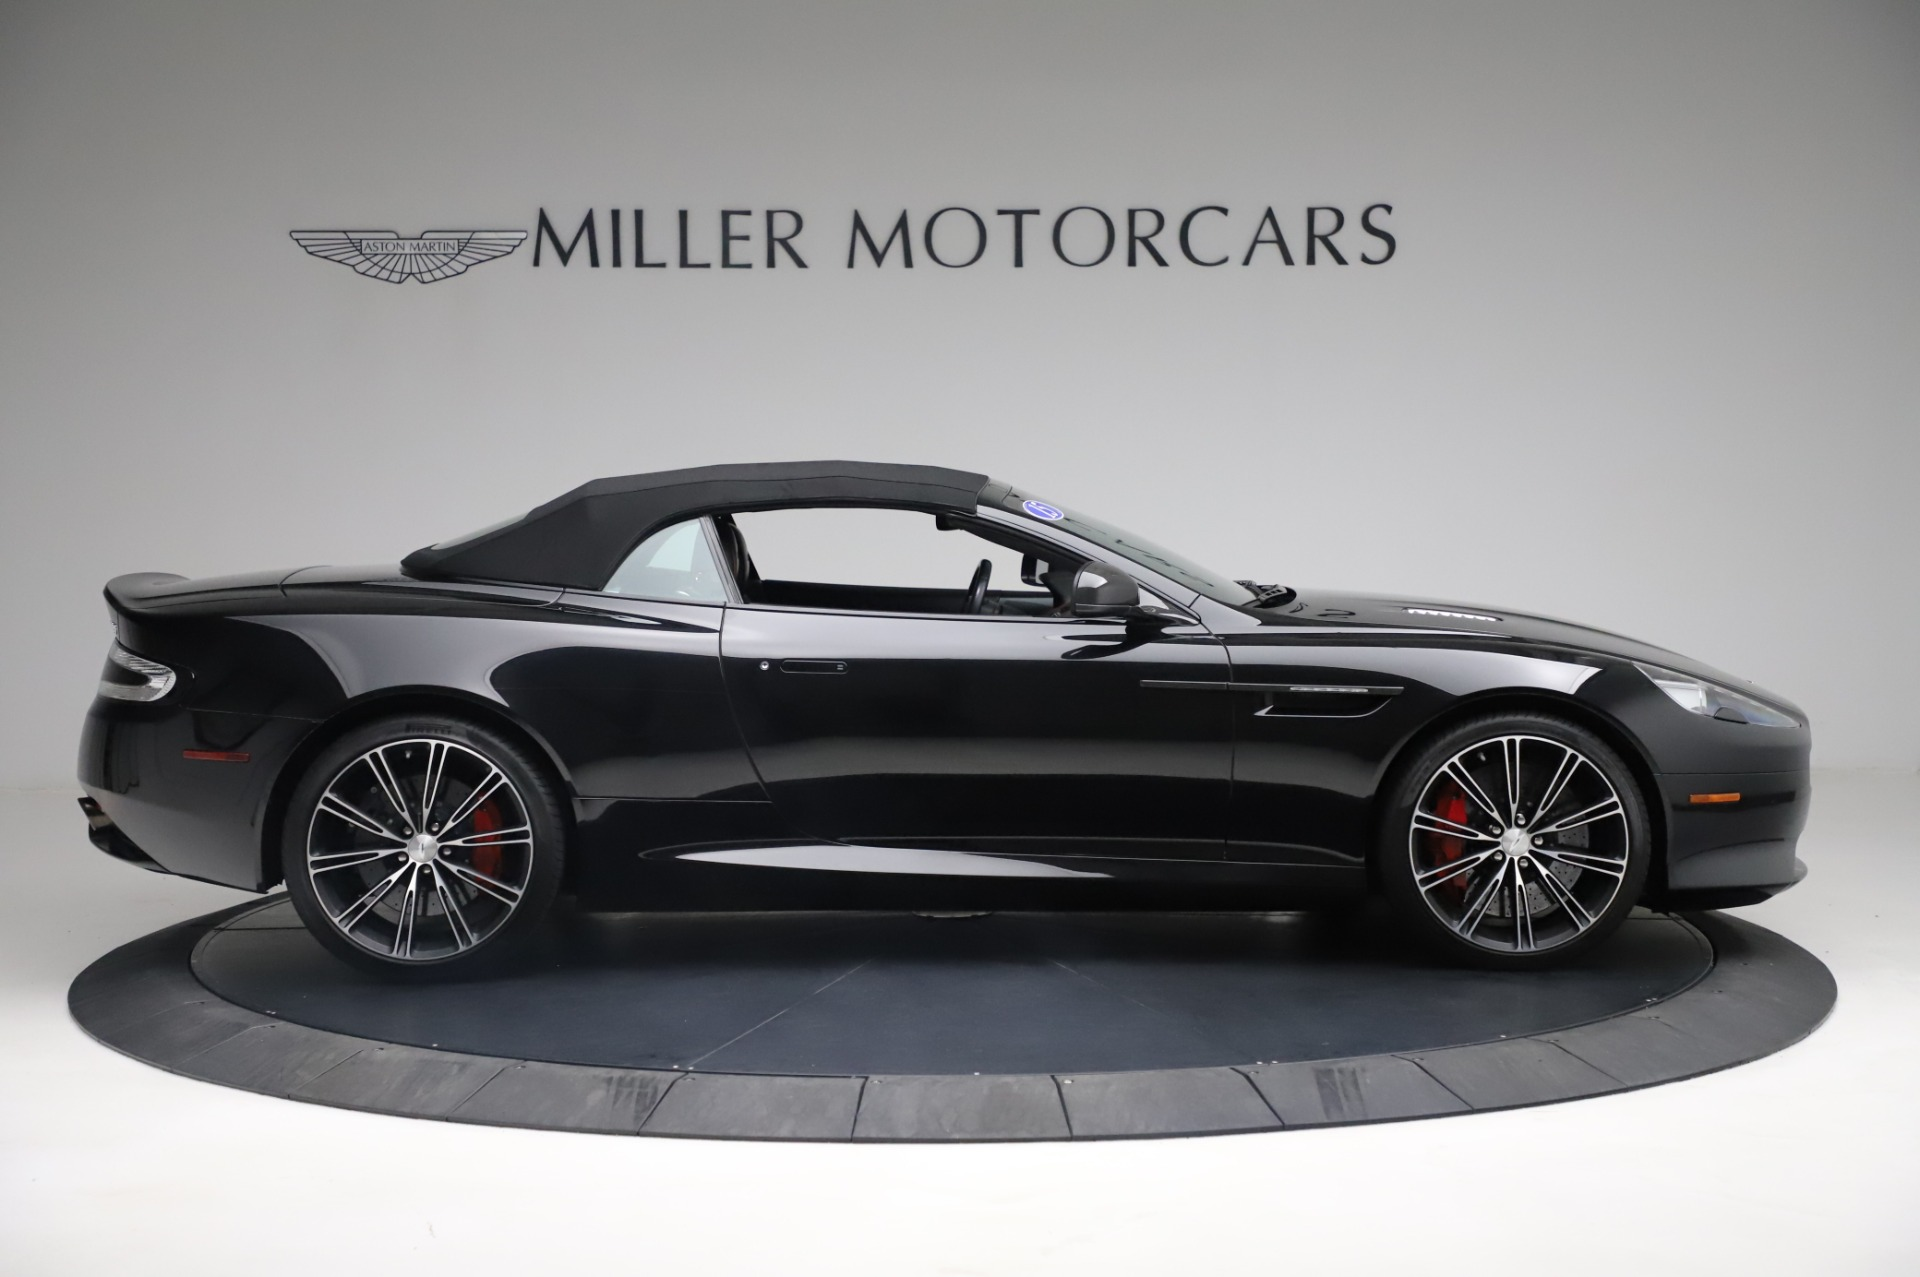 Used 2015 Aston Martin DB9 Carbon Edition Volante For Sale In Westport, CT 1919_p18